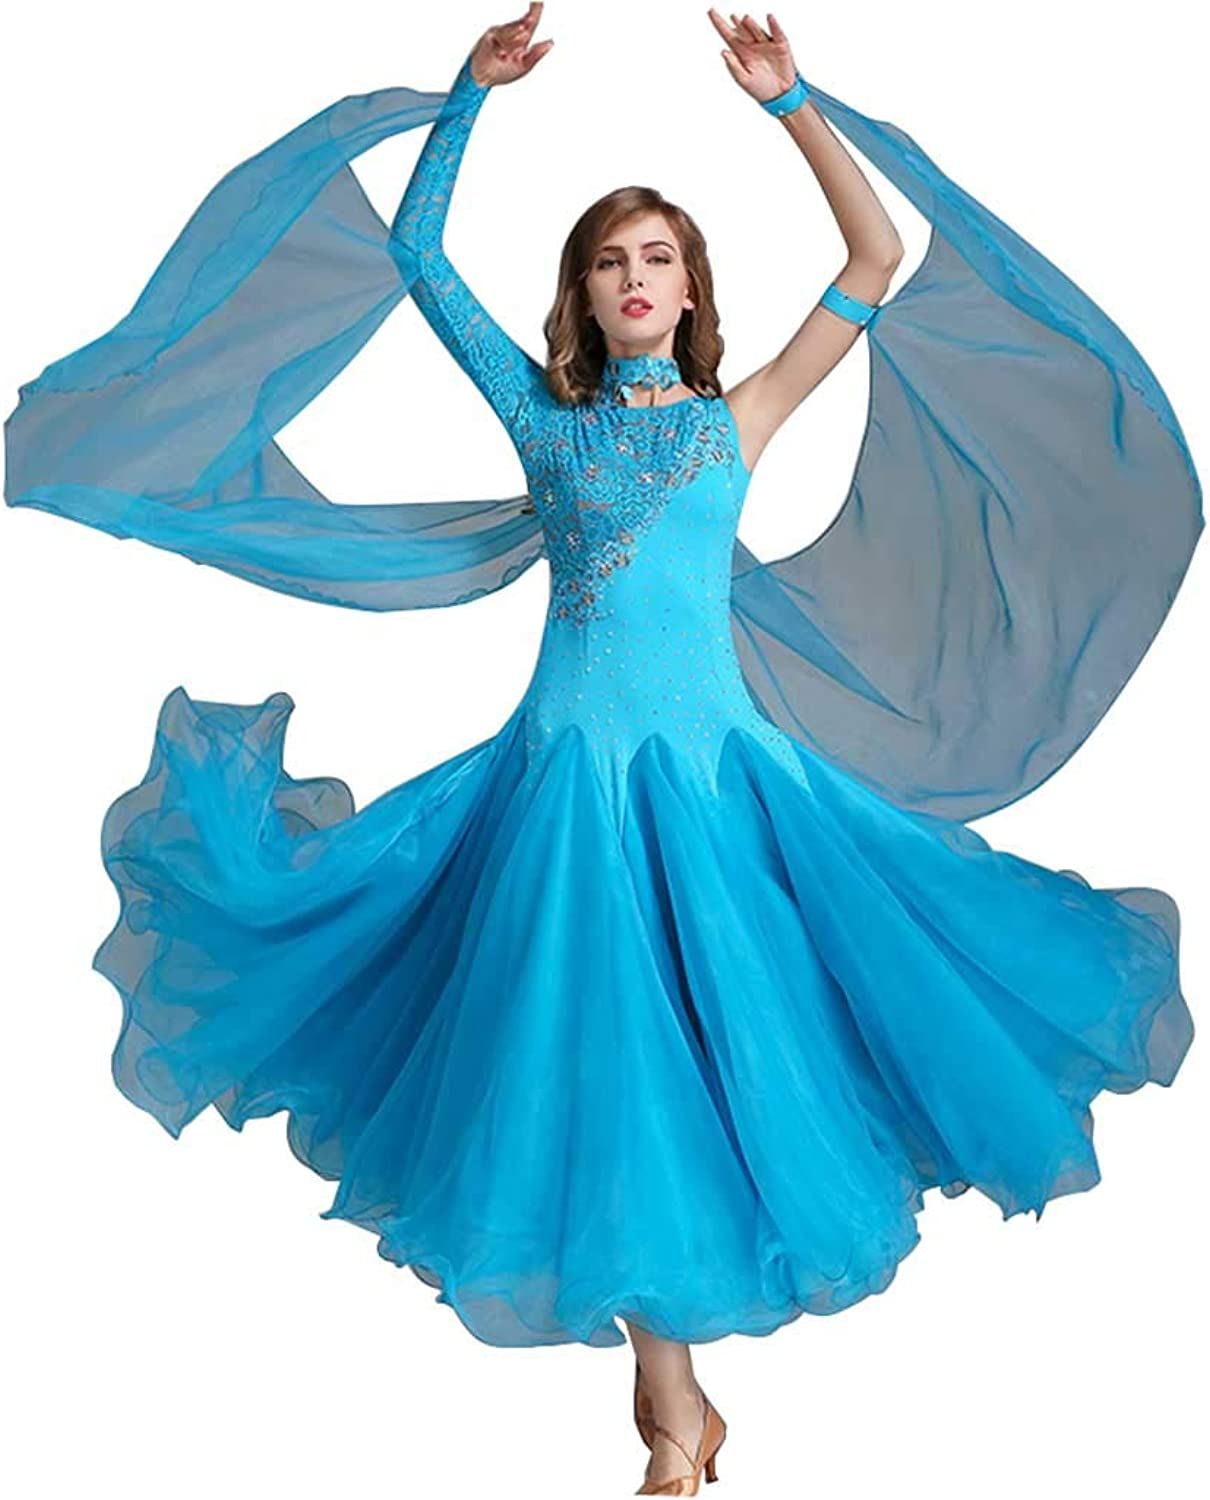 Dance Dress Lake bluee Modern Dance Skirt Spring and Summer Lace Big Swing Skirt